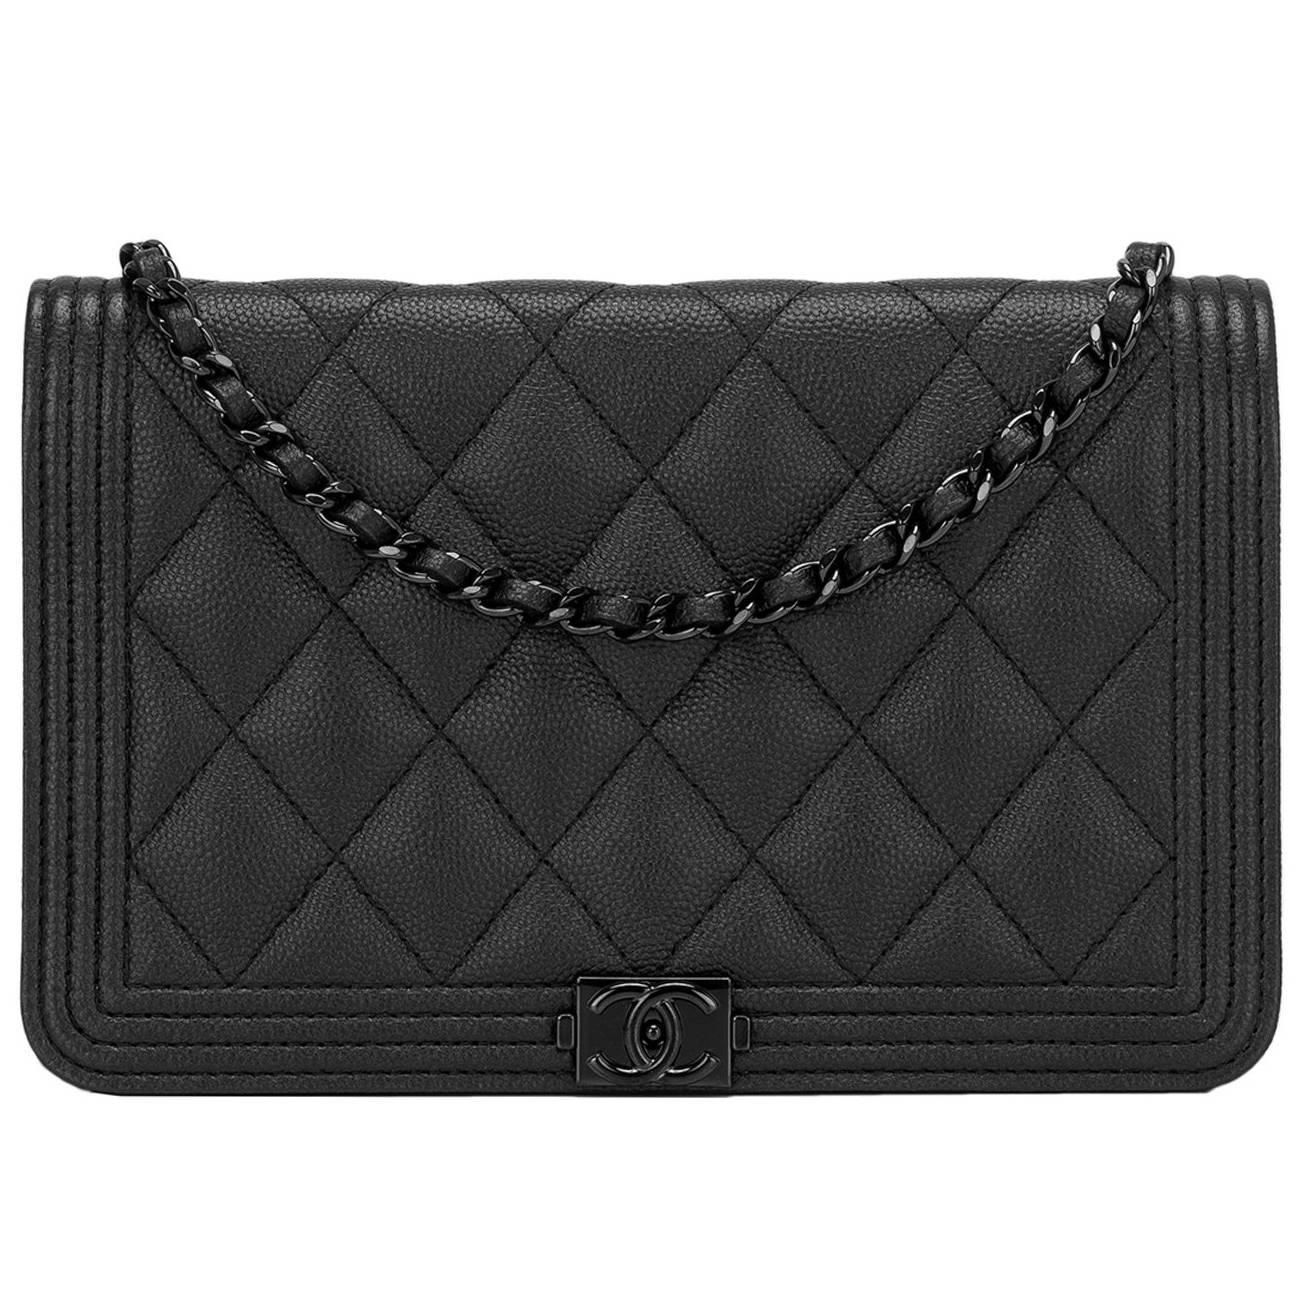 4271038d6afb Boy WOC in 2019 | styles' references | Chanel woc, Sac chanel, Chanel  handbags